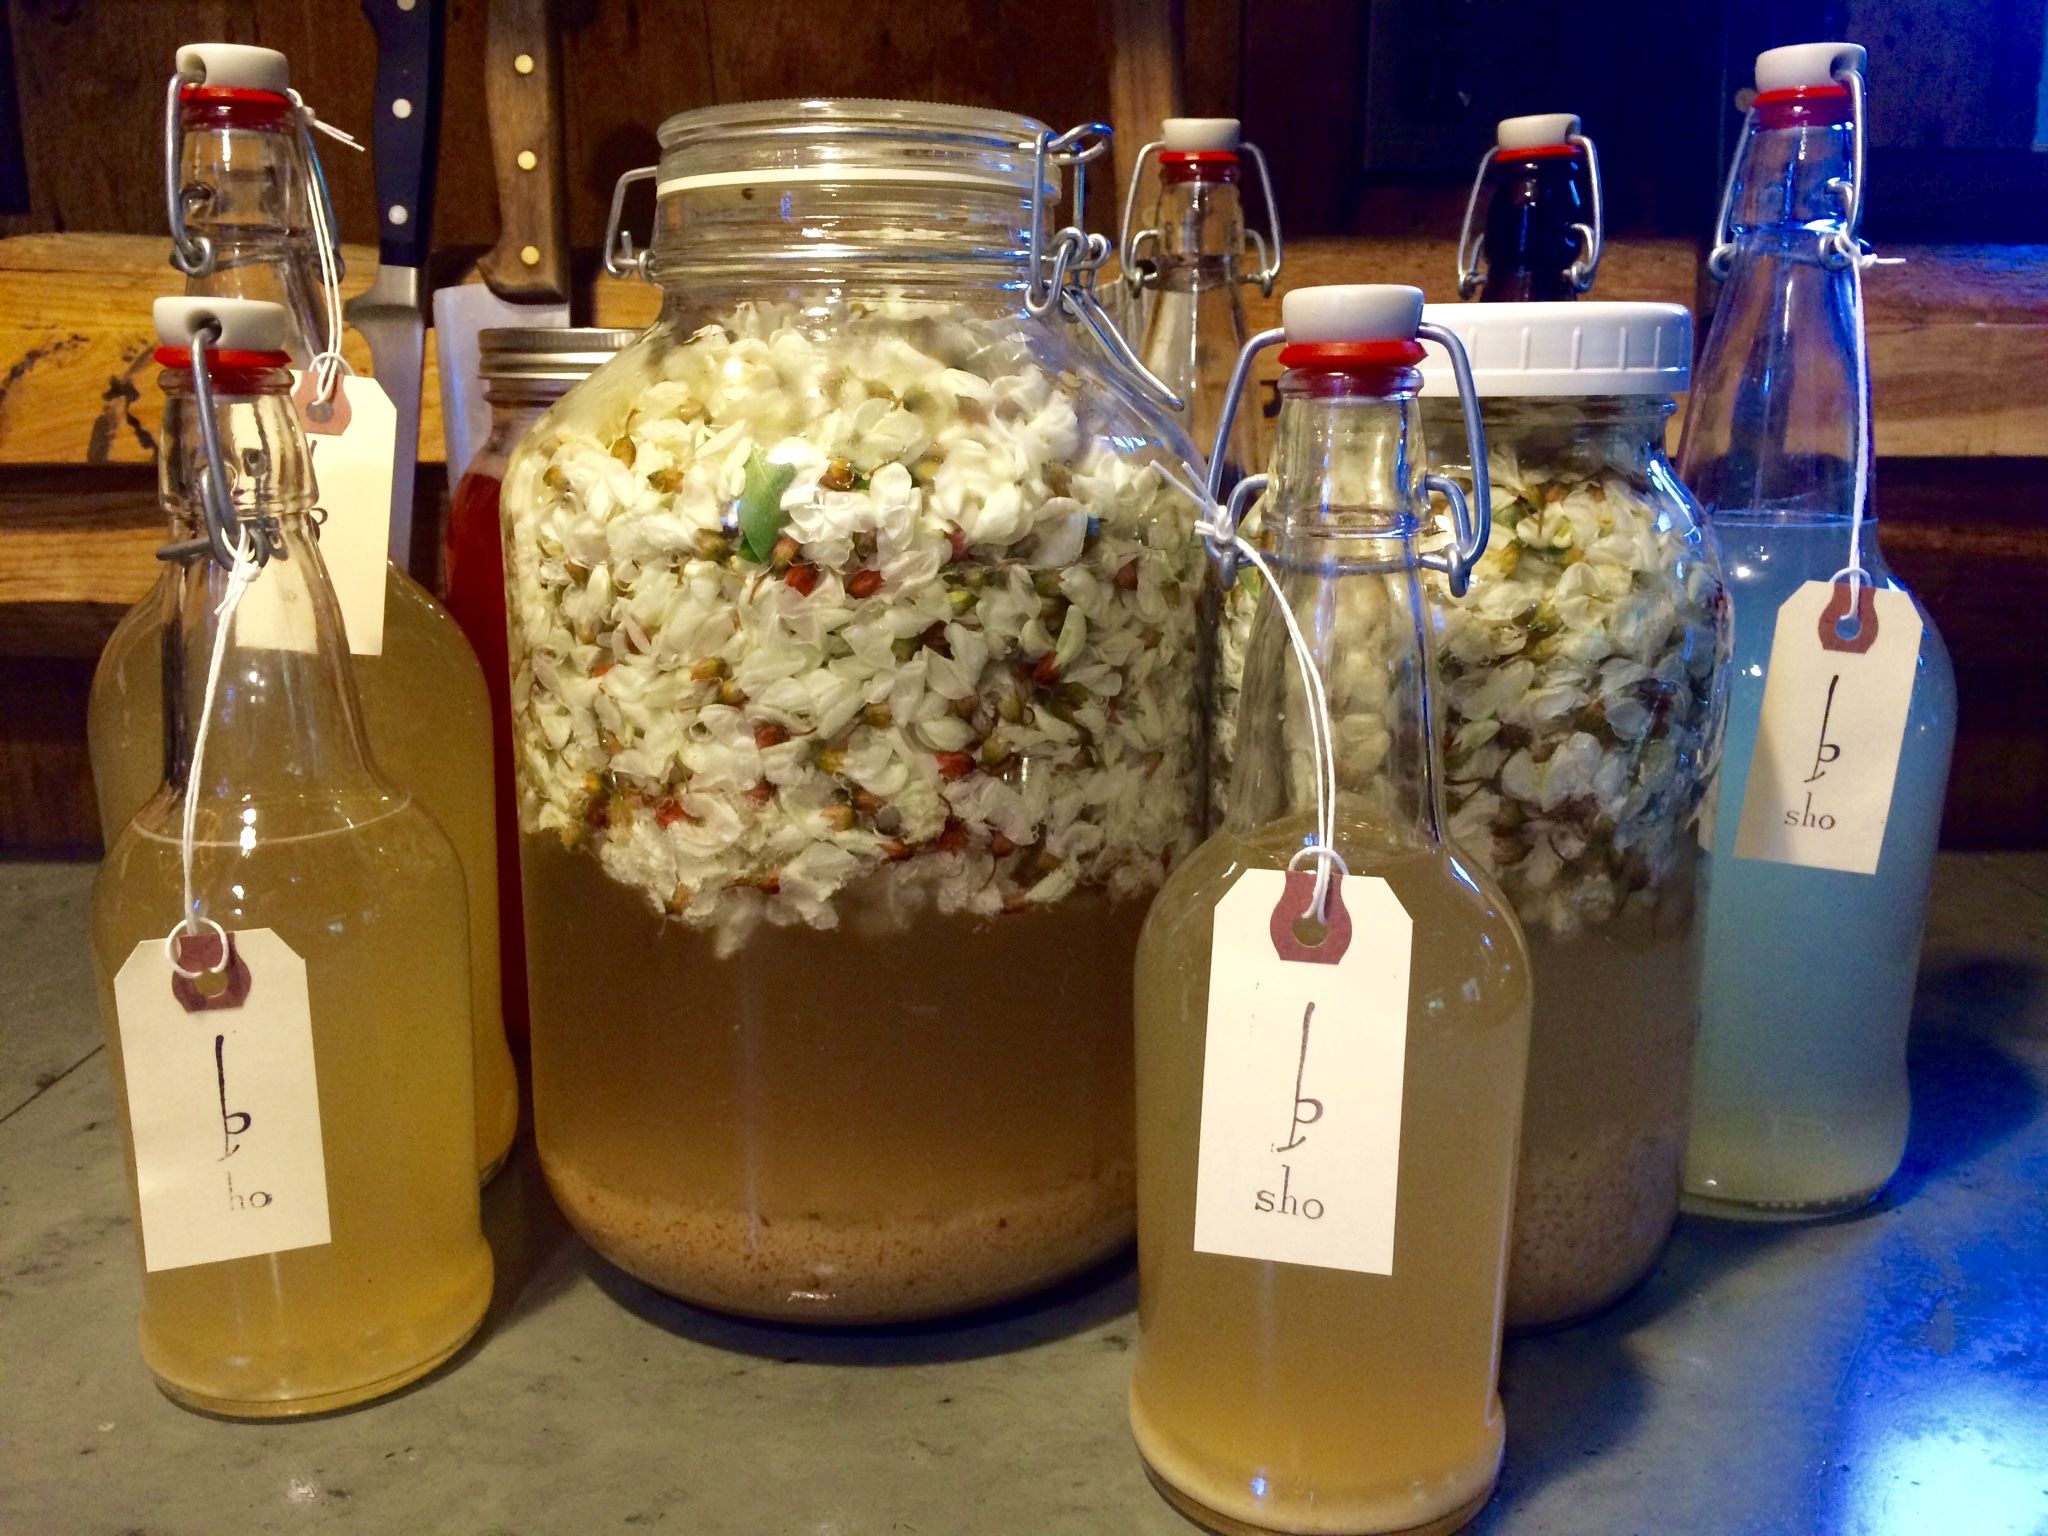 Probiotic water kefirs combined with seasonal flowers...black locust, creates a champagne-like drink with healing properties and unusual flavors. Each drink makes time stand still, with ephemeral flowers preserved in a delicious and aromatic beverage.